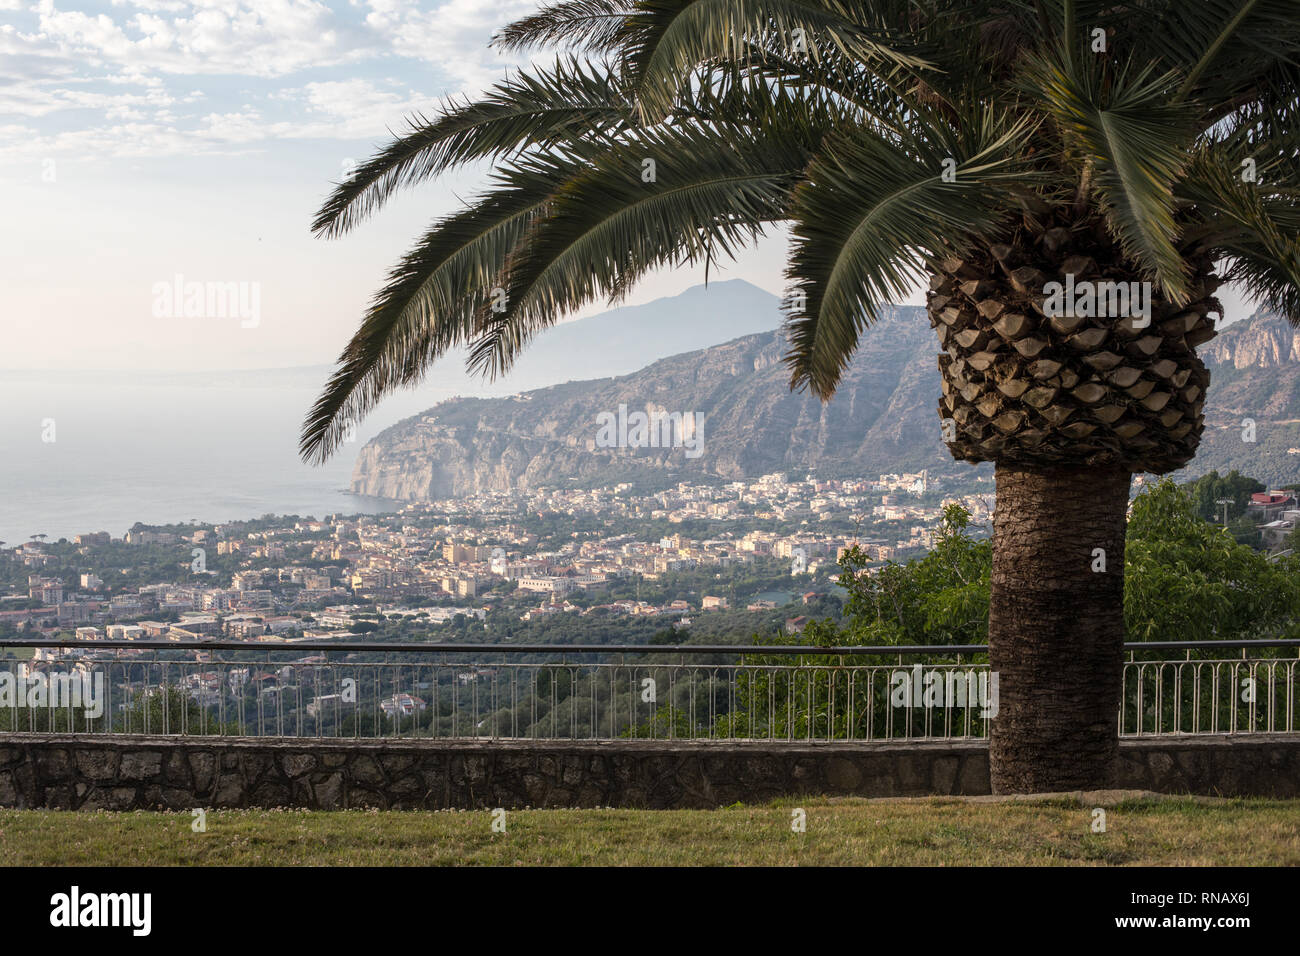 Palm tree with the Gulf of Naples and Vesuvius in the background - Stock Image